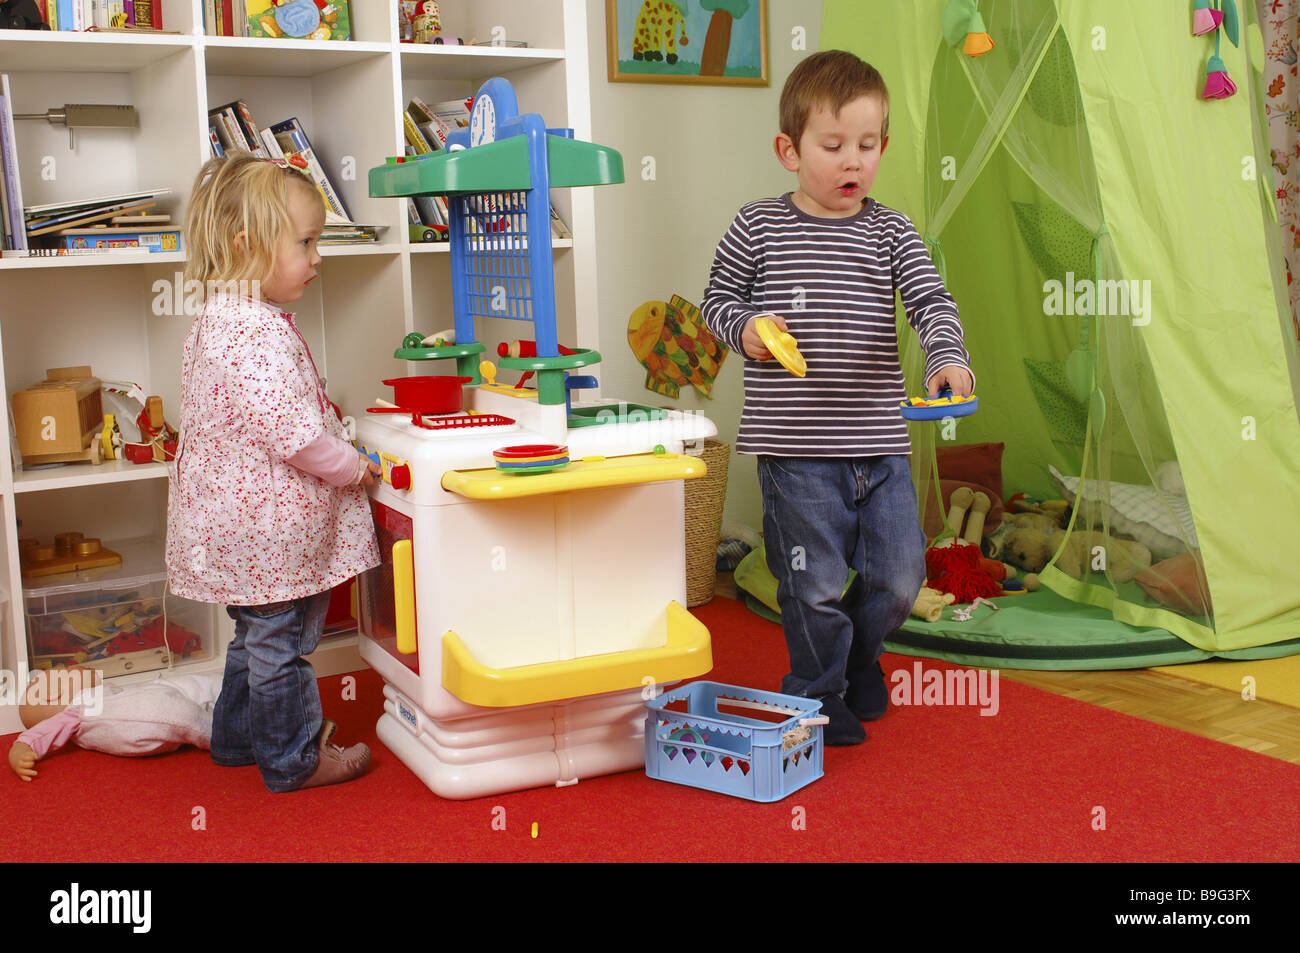 nursery boy girl toy-kitchen play together series people ...